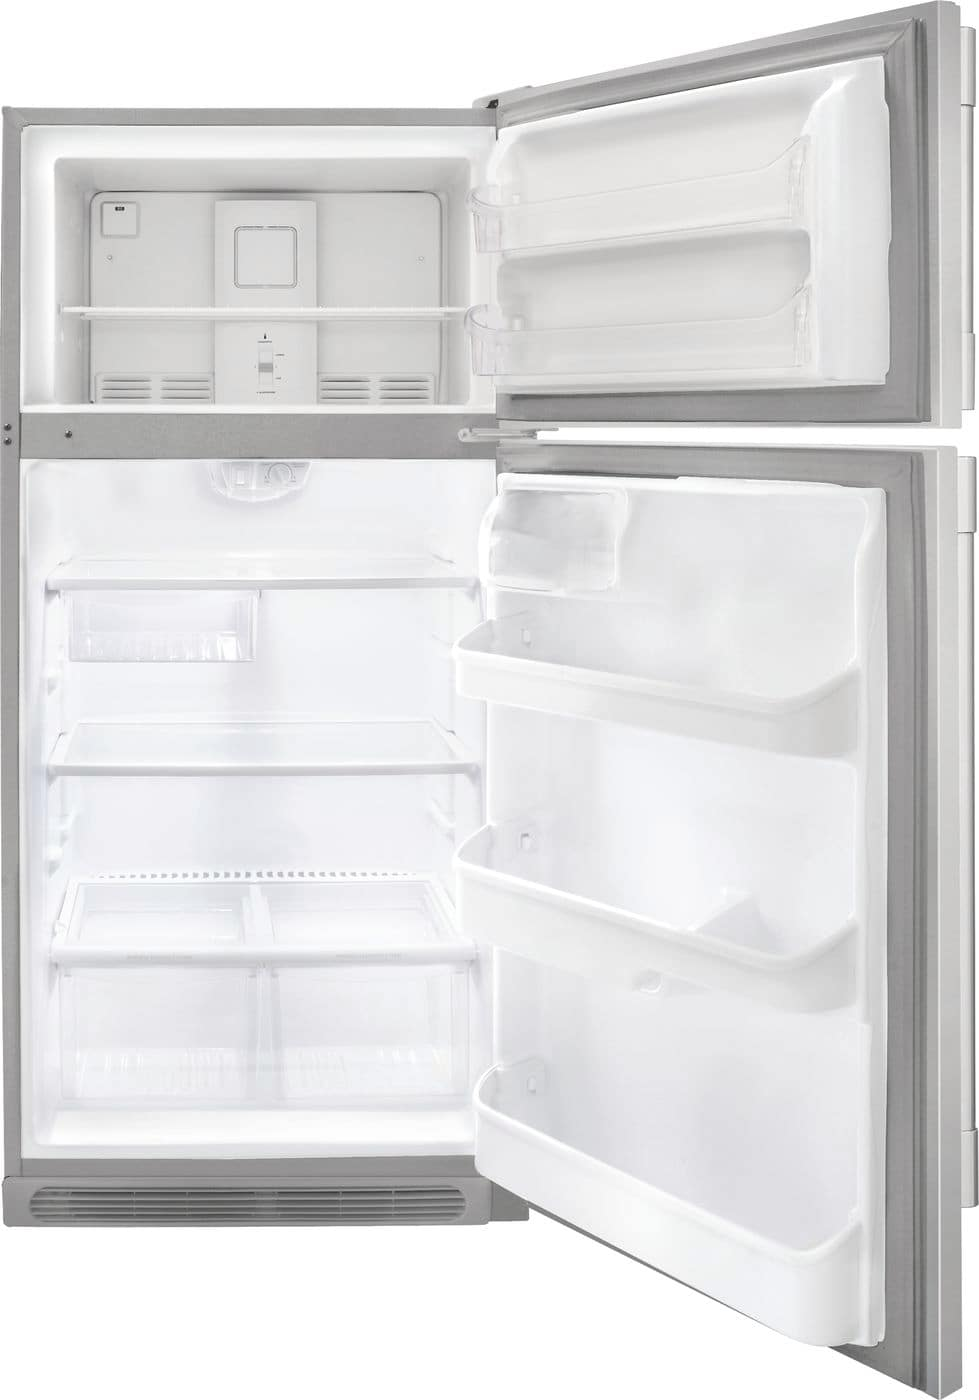 Model: FPHT1897TF | Frigidaire 18 Cu. Ft. Top Freezer Refrigerator